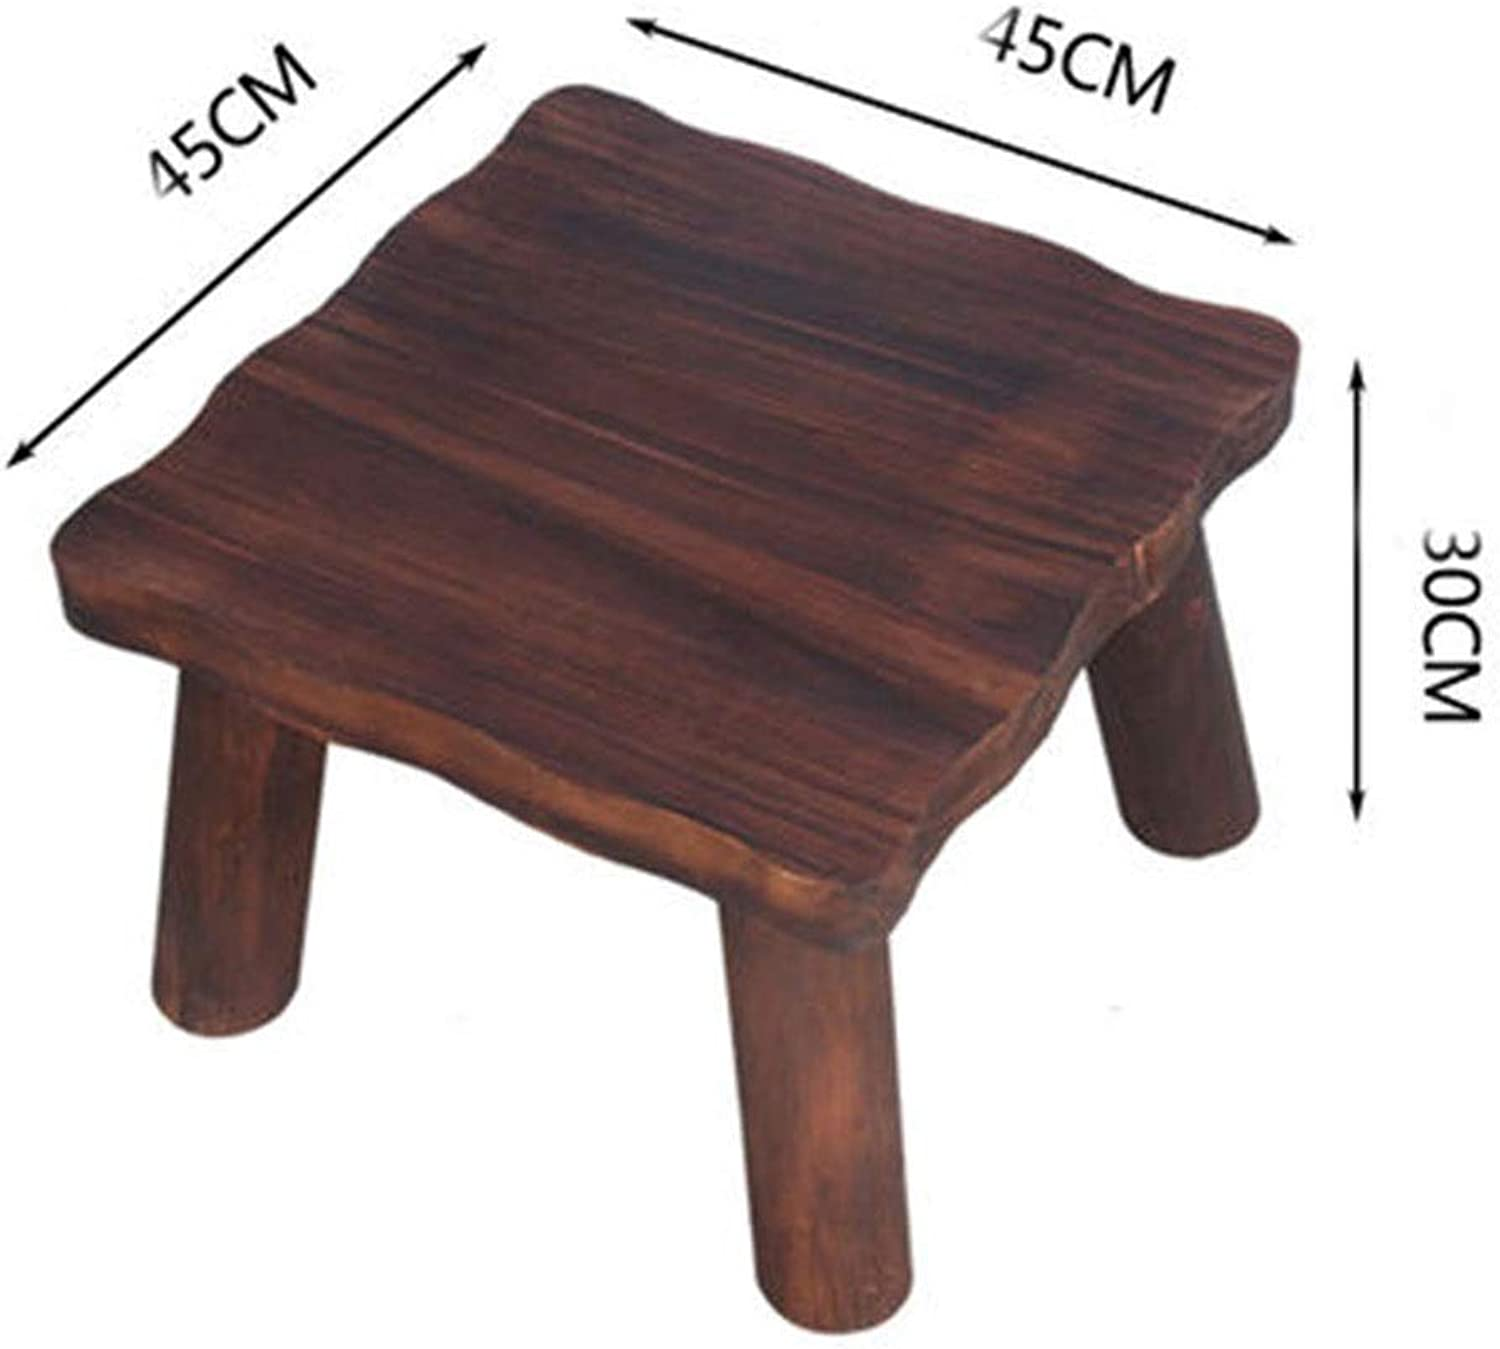 B.YDCM Wooden Bench- Home Stool Coffee Table Low Stool Square Thick Small Bench Anti-Corrosion Wooden Square Stool Adult Wood - Wood Bench (color   D)